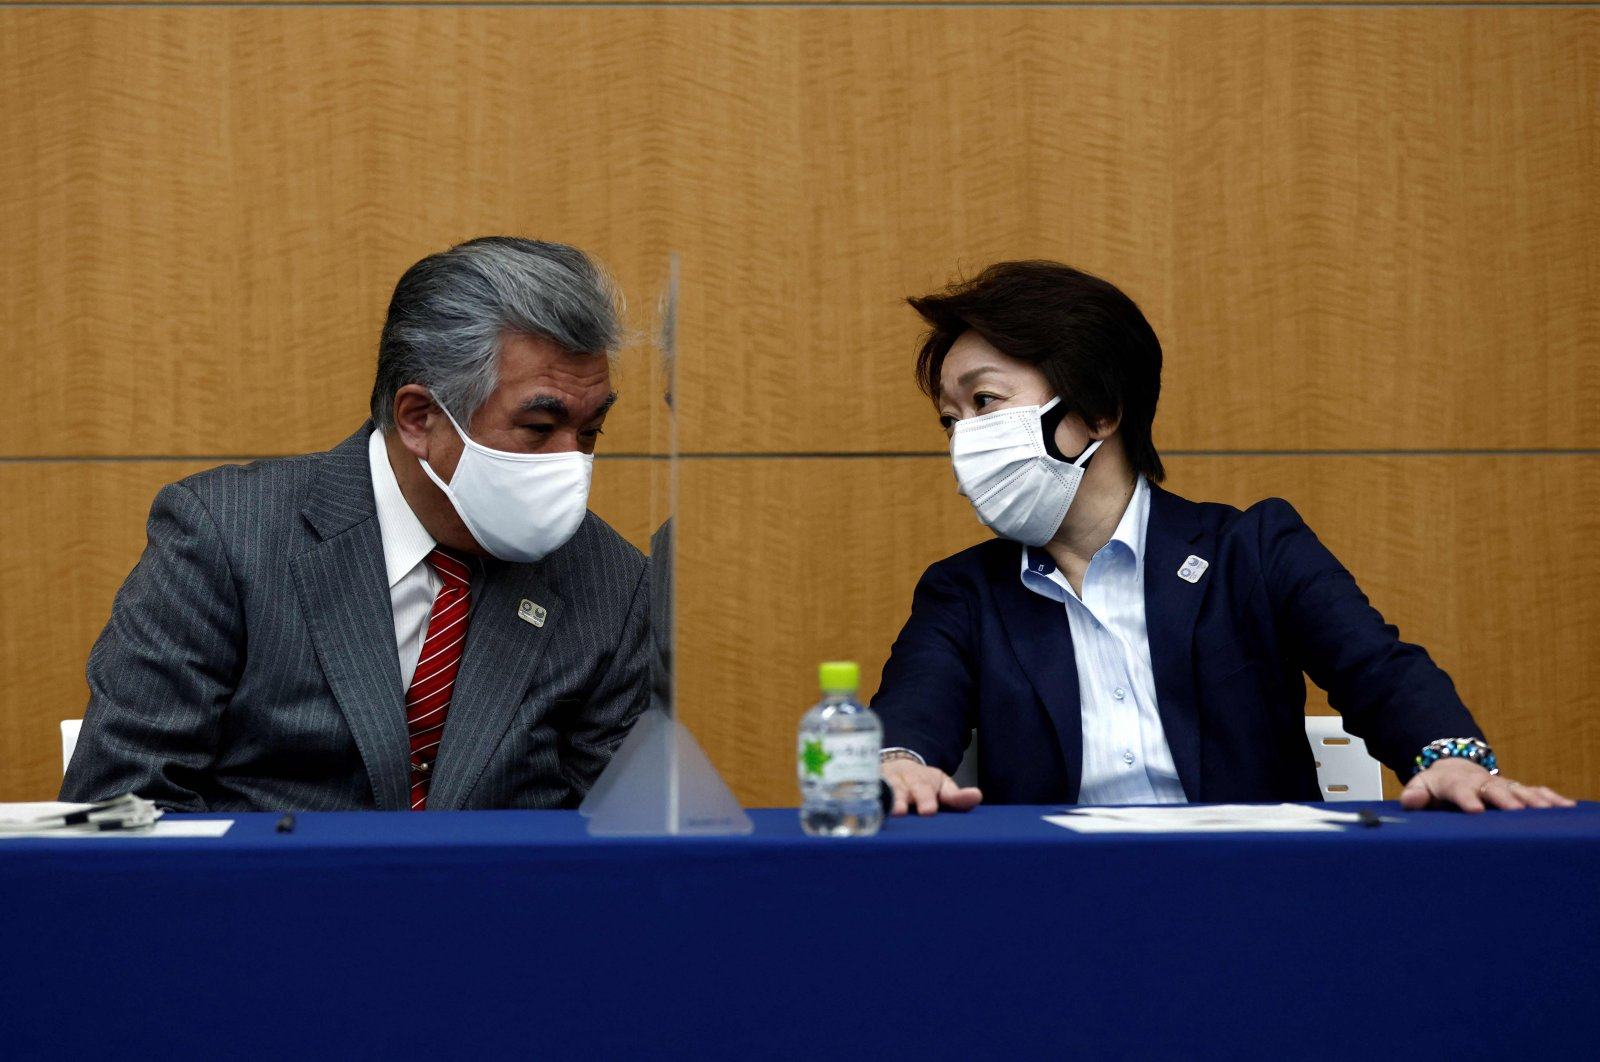 Tokyo 2020 Vice Director-General Yukihiko Nunomura (L) speaks with President of the Tokyo 2020 Olympics Organising Committee Seiko Hashimoto before the press briefing on operations and media coverage of the Tokyo 2020 Olympic Torch Relay in Tokyo, Japan, on Feb. 25, 2021. (AFP Photo)